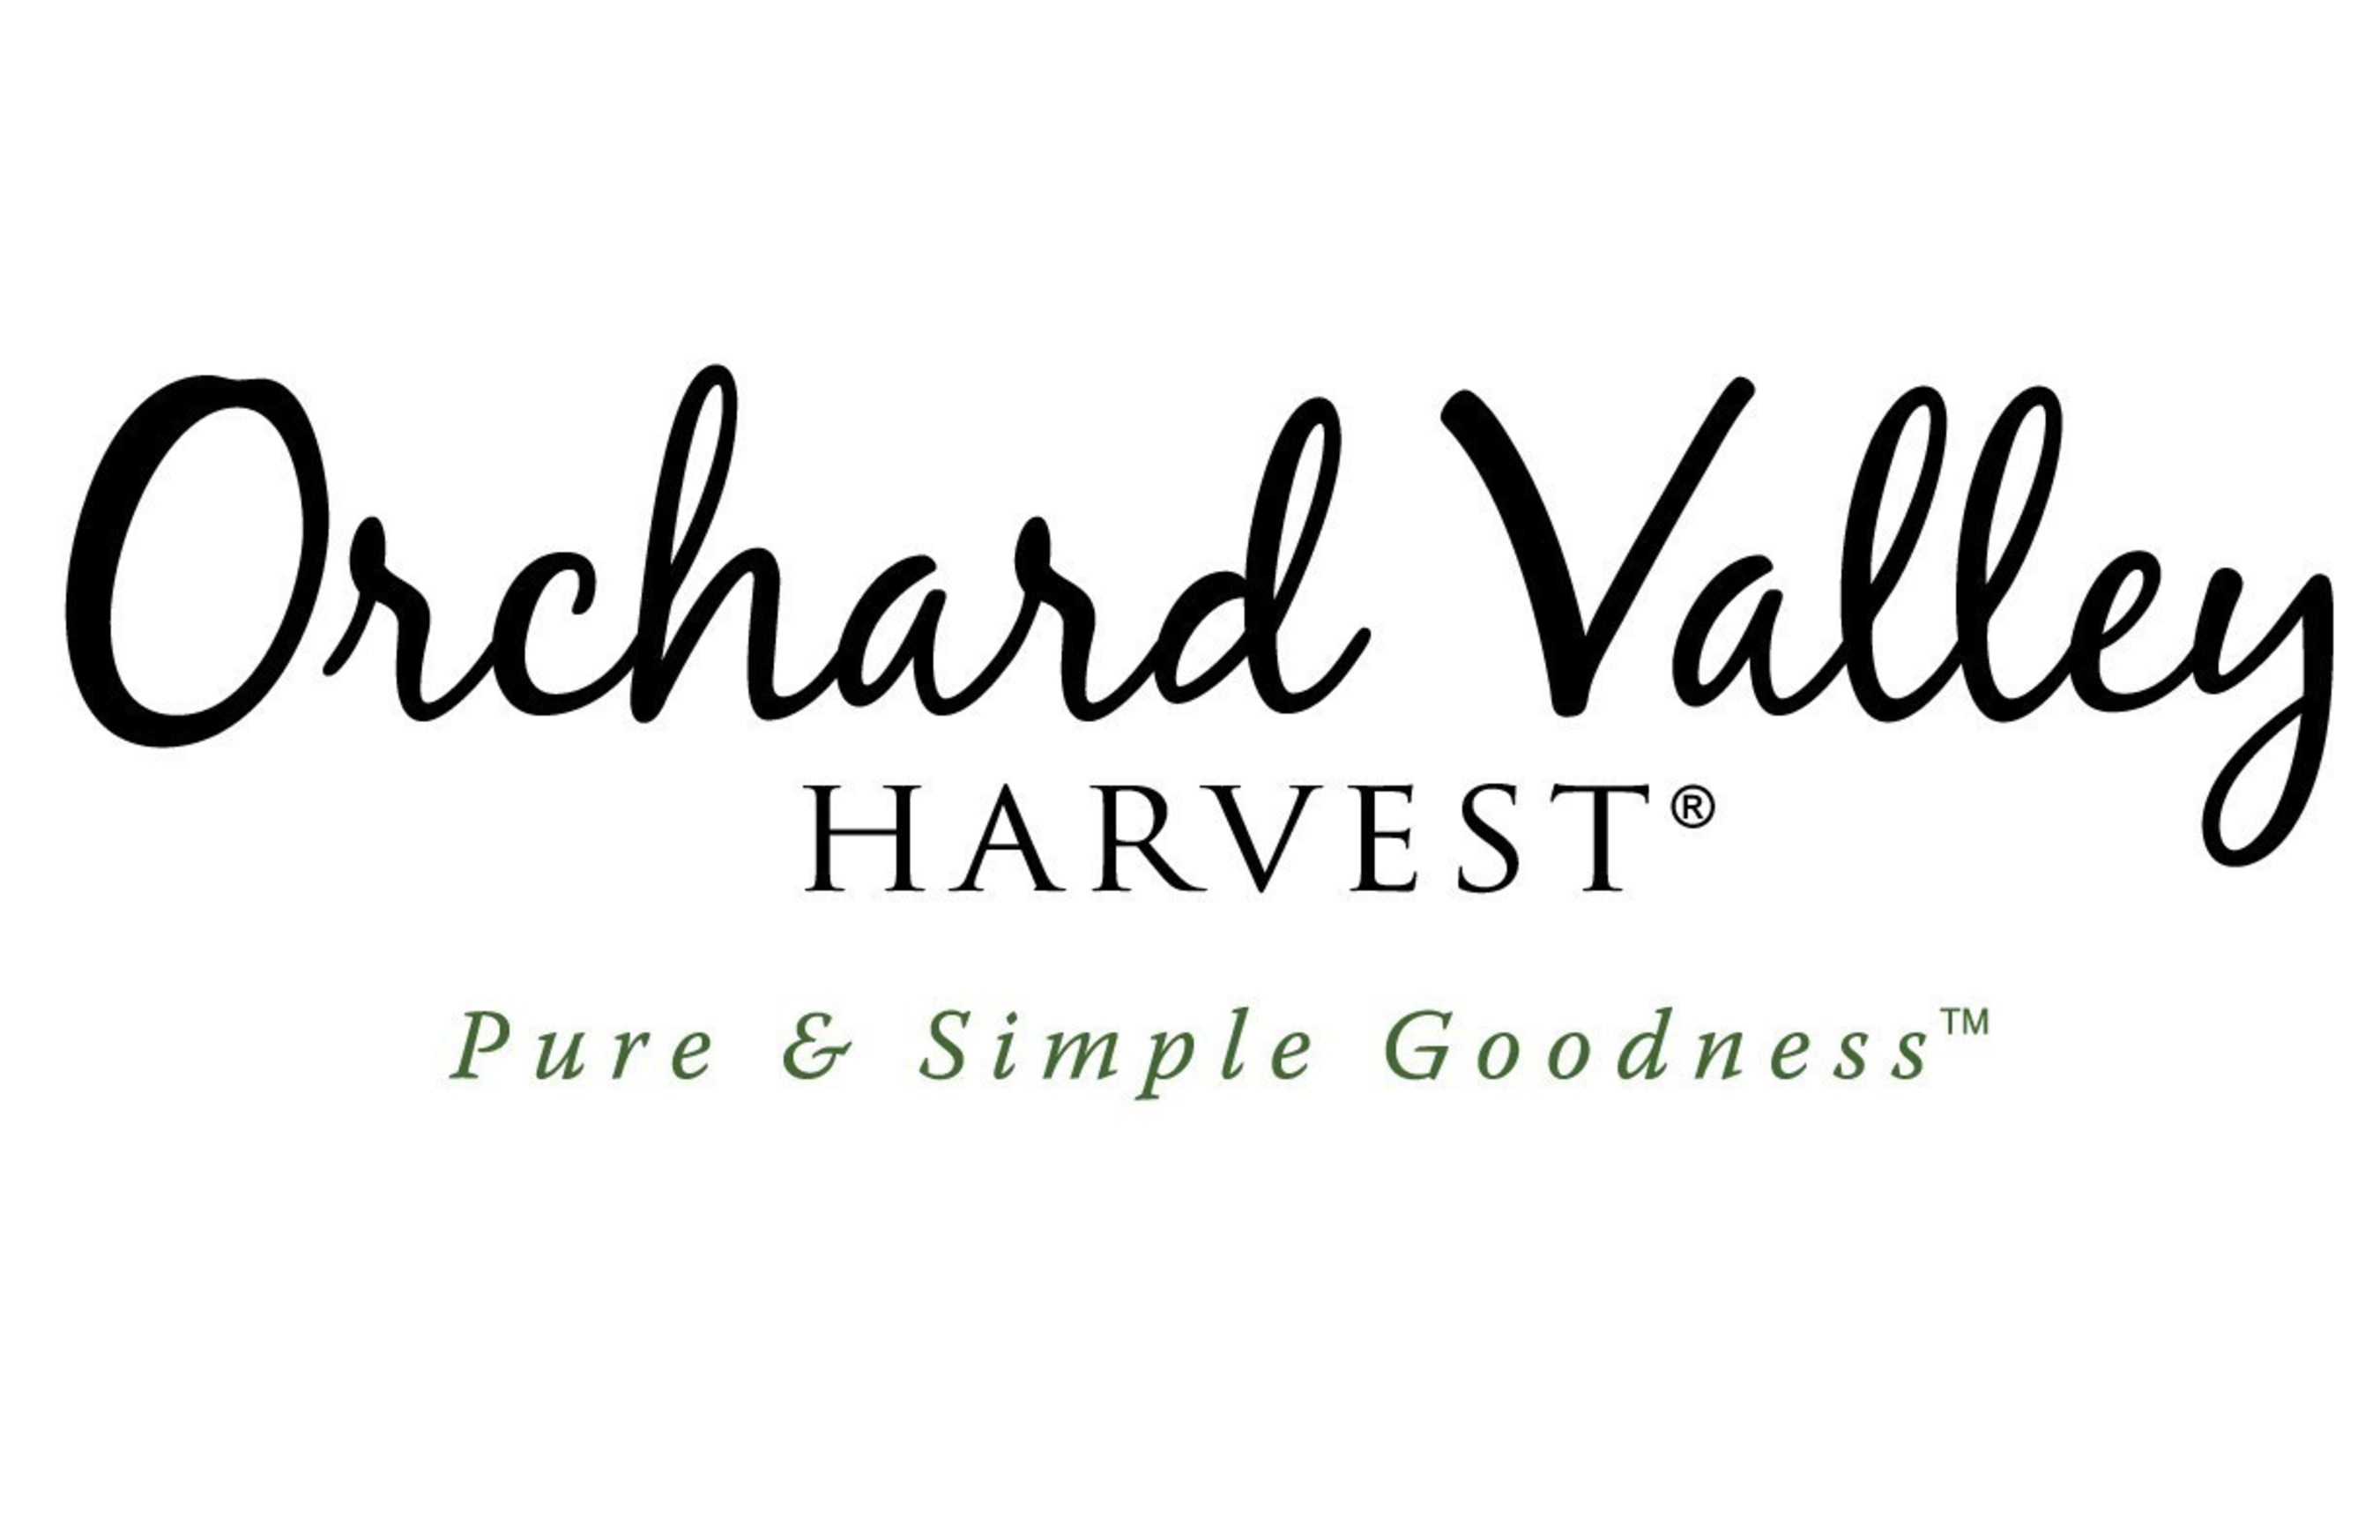 Brand orchard valley